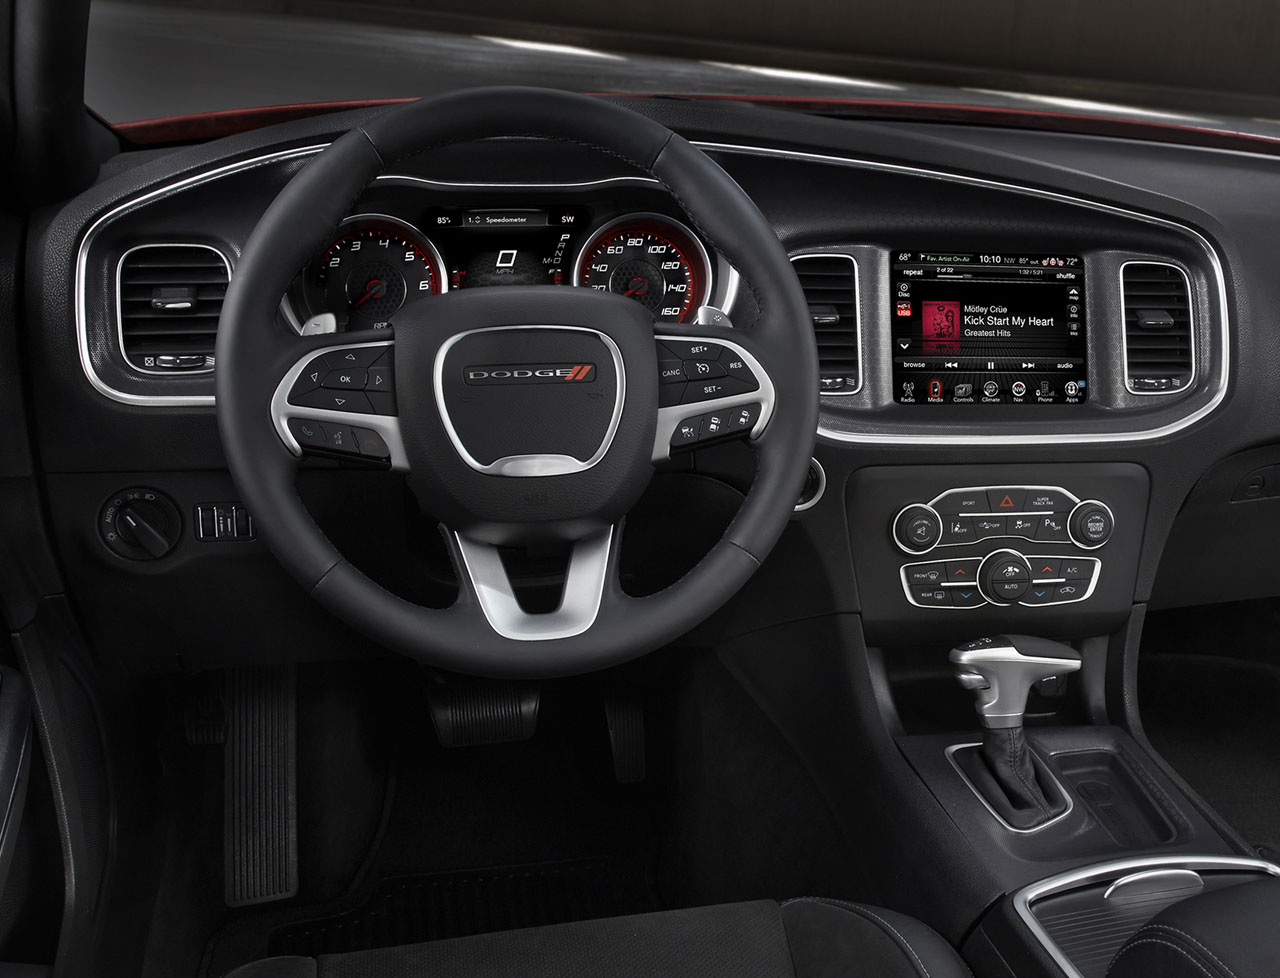 Cherry Hill Dodge >> 2017 Dodge Charger Interior Pictures | Cabinets Matttroy